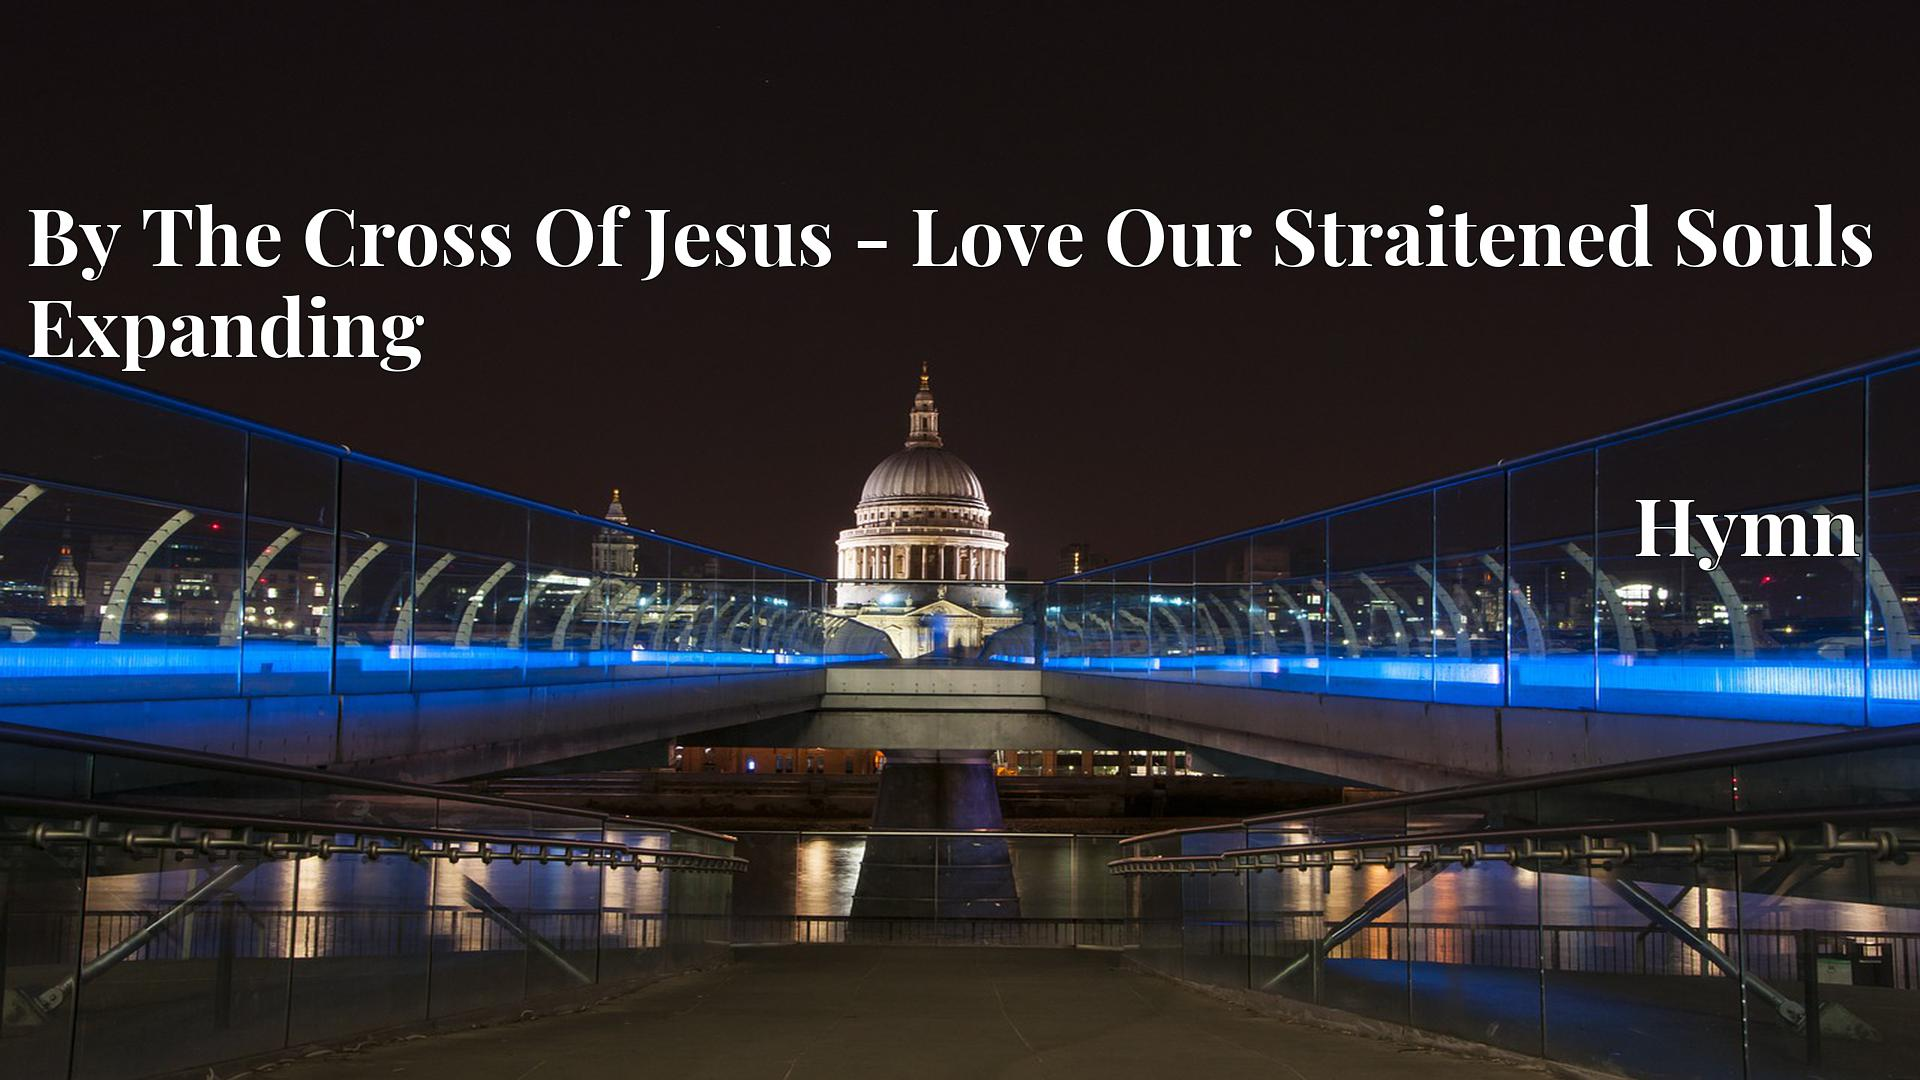 By The Cross Of Jesus - Love Our Straitened Souls Expanding - Hymn